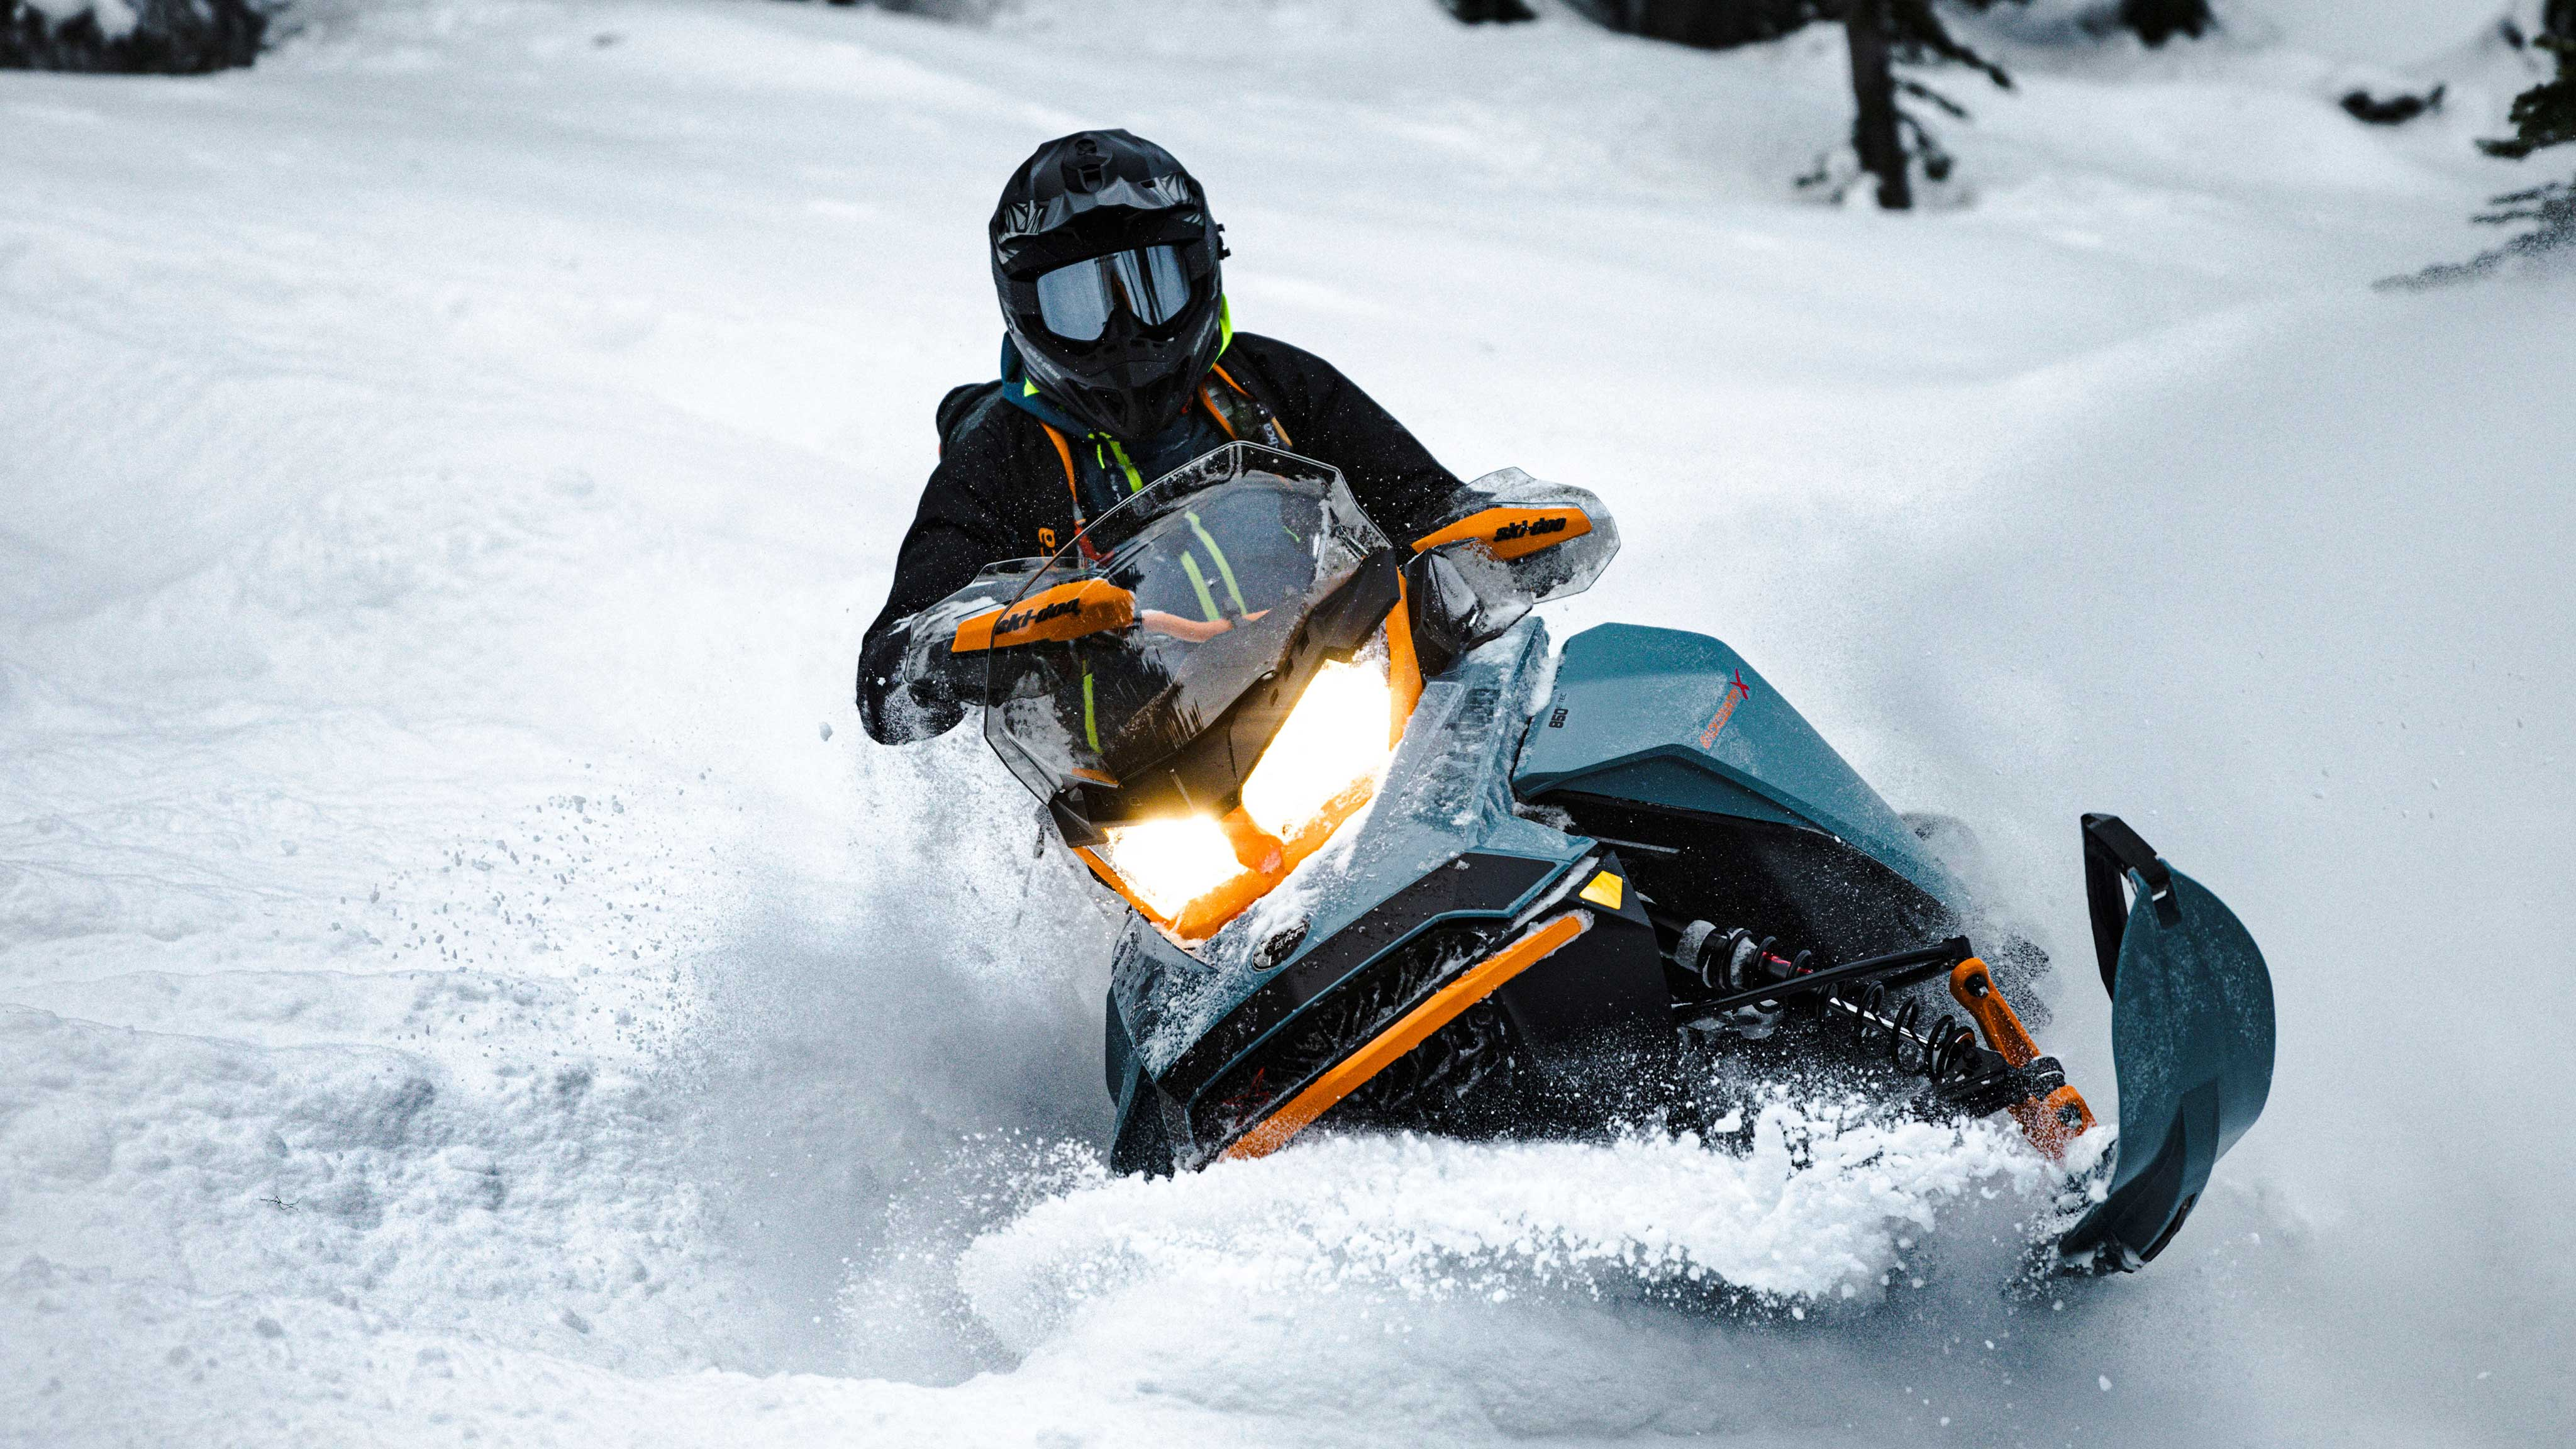 Rider riding a blue Ski-Doo Backcountry snowmobile in deep snow